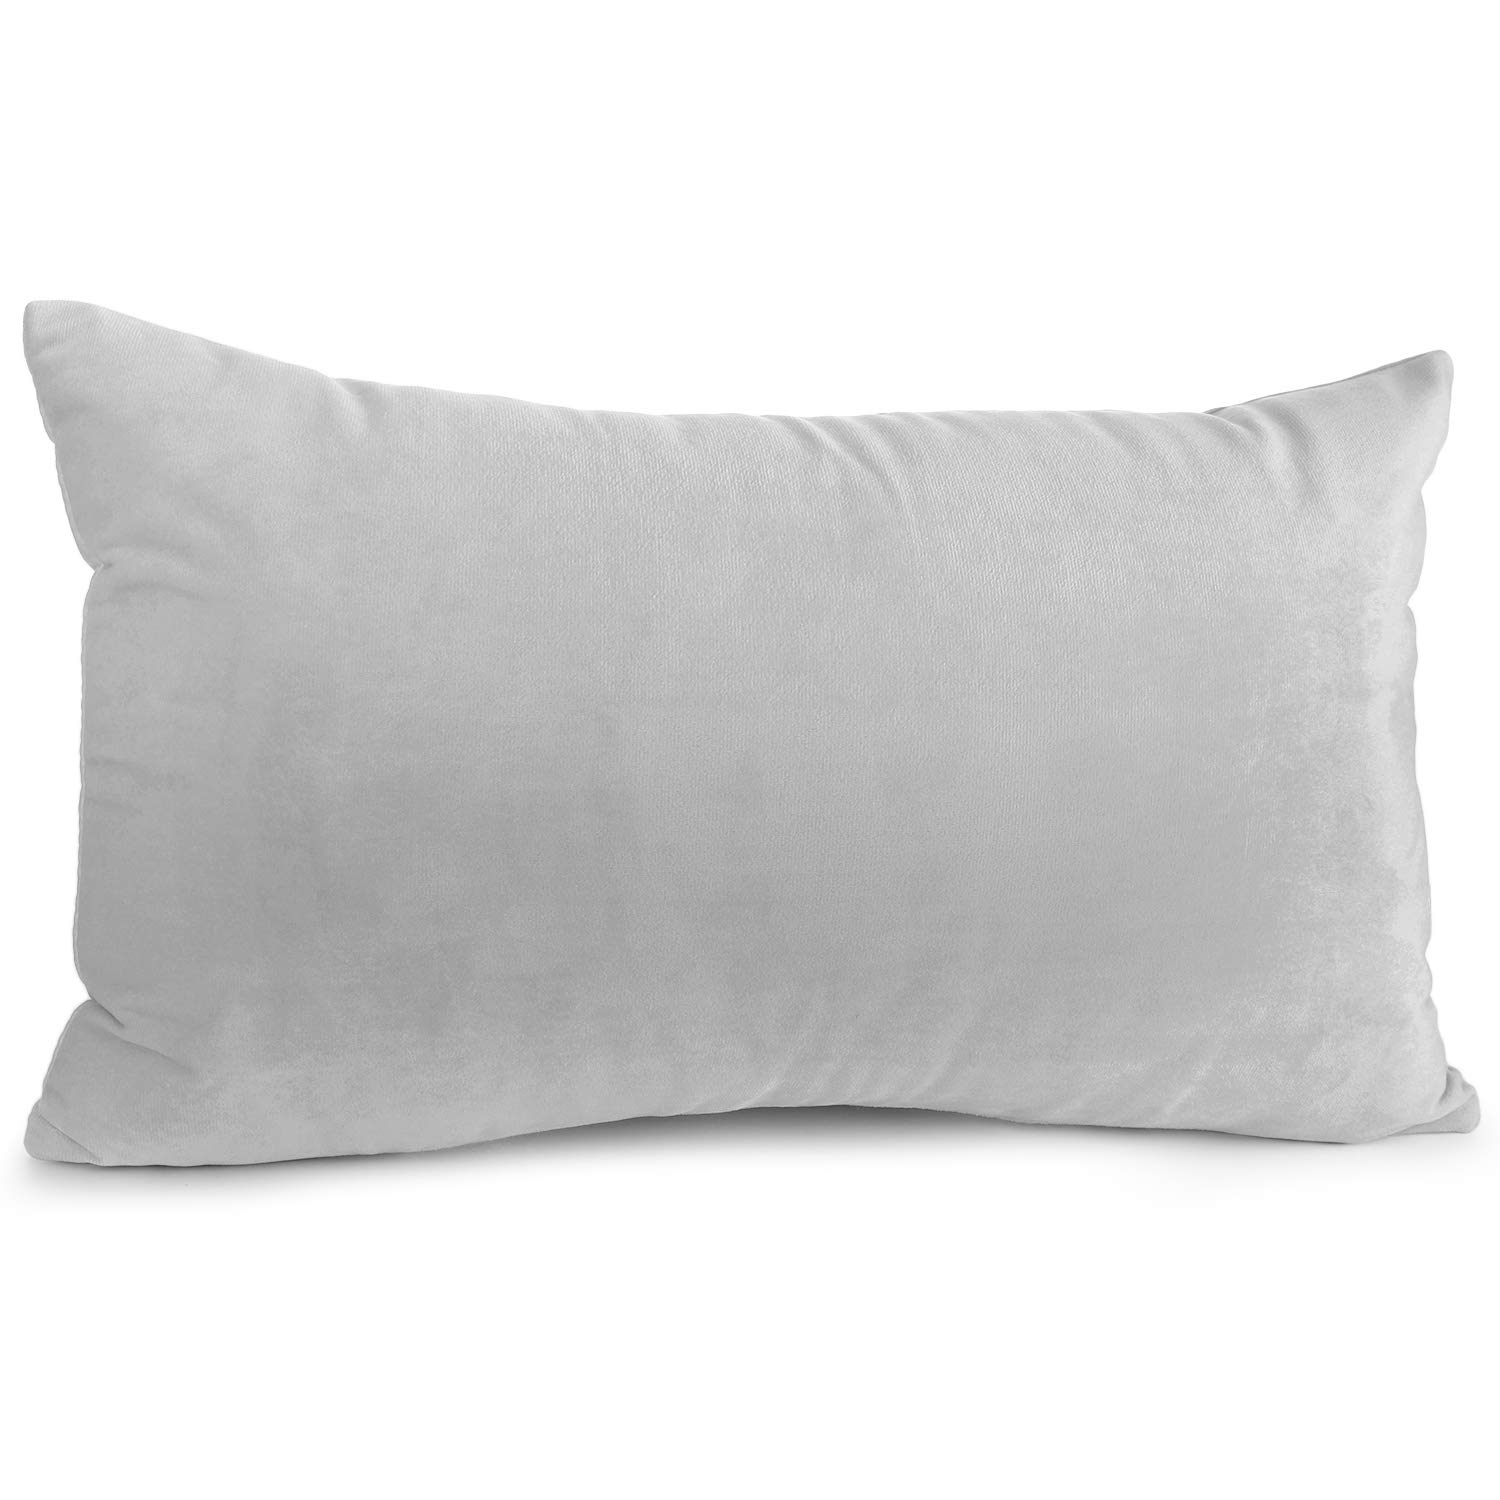 """Nestl Bedding Throw Pillow Cover 12"""" x 20"""" Soft Square Decorative Throw Pillow Covers Cozy Velvet Cushion Case for Sofa Couch Bedroom - Light Gray"""